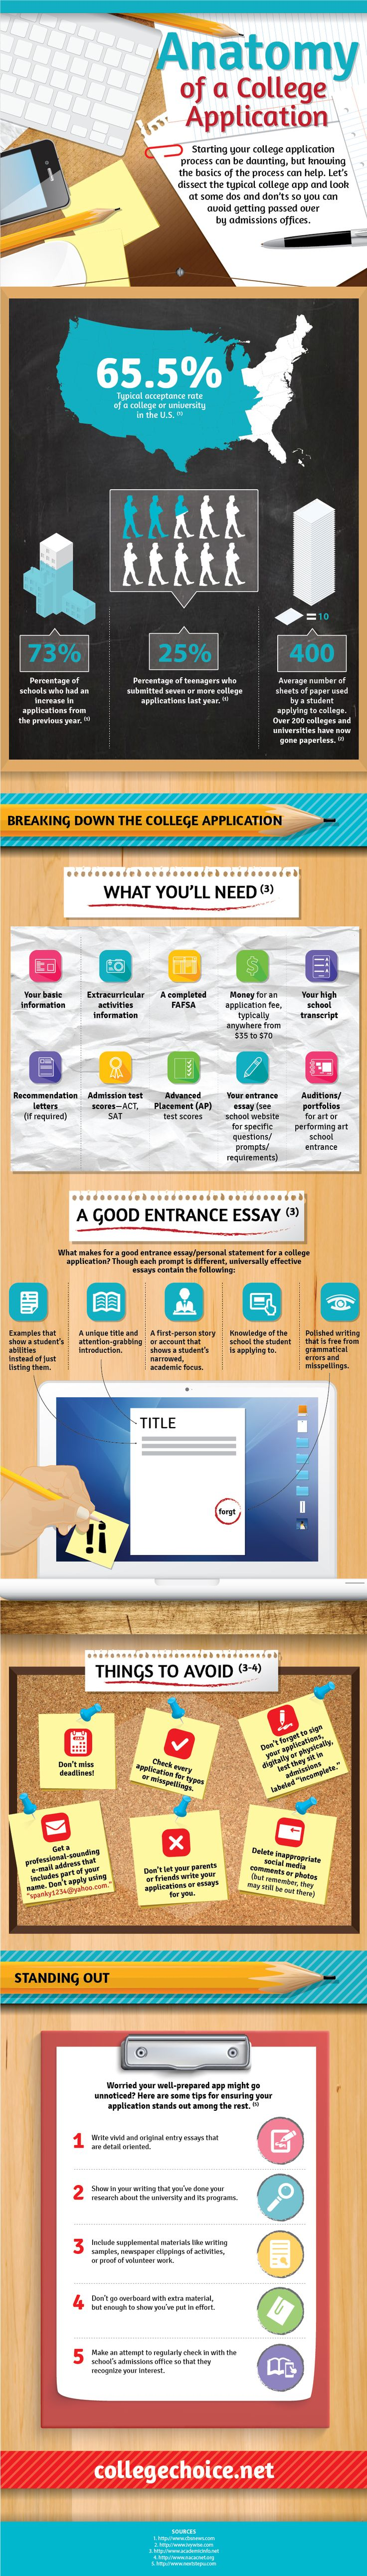 best ideas about college admission essay college my supreme ordeal is my college application process this will affect the rest of my life and is very important i chose this pin because i believe it will